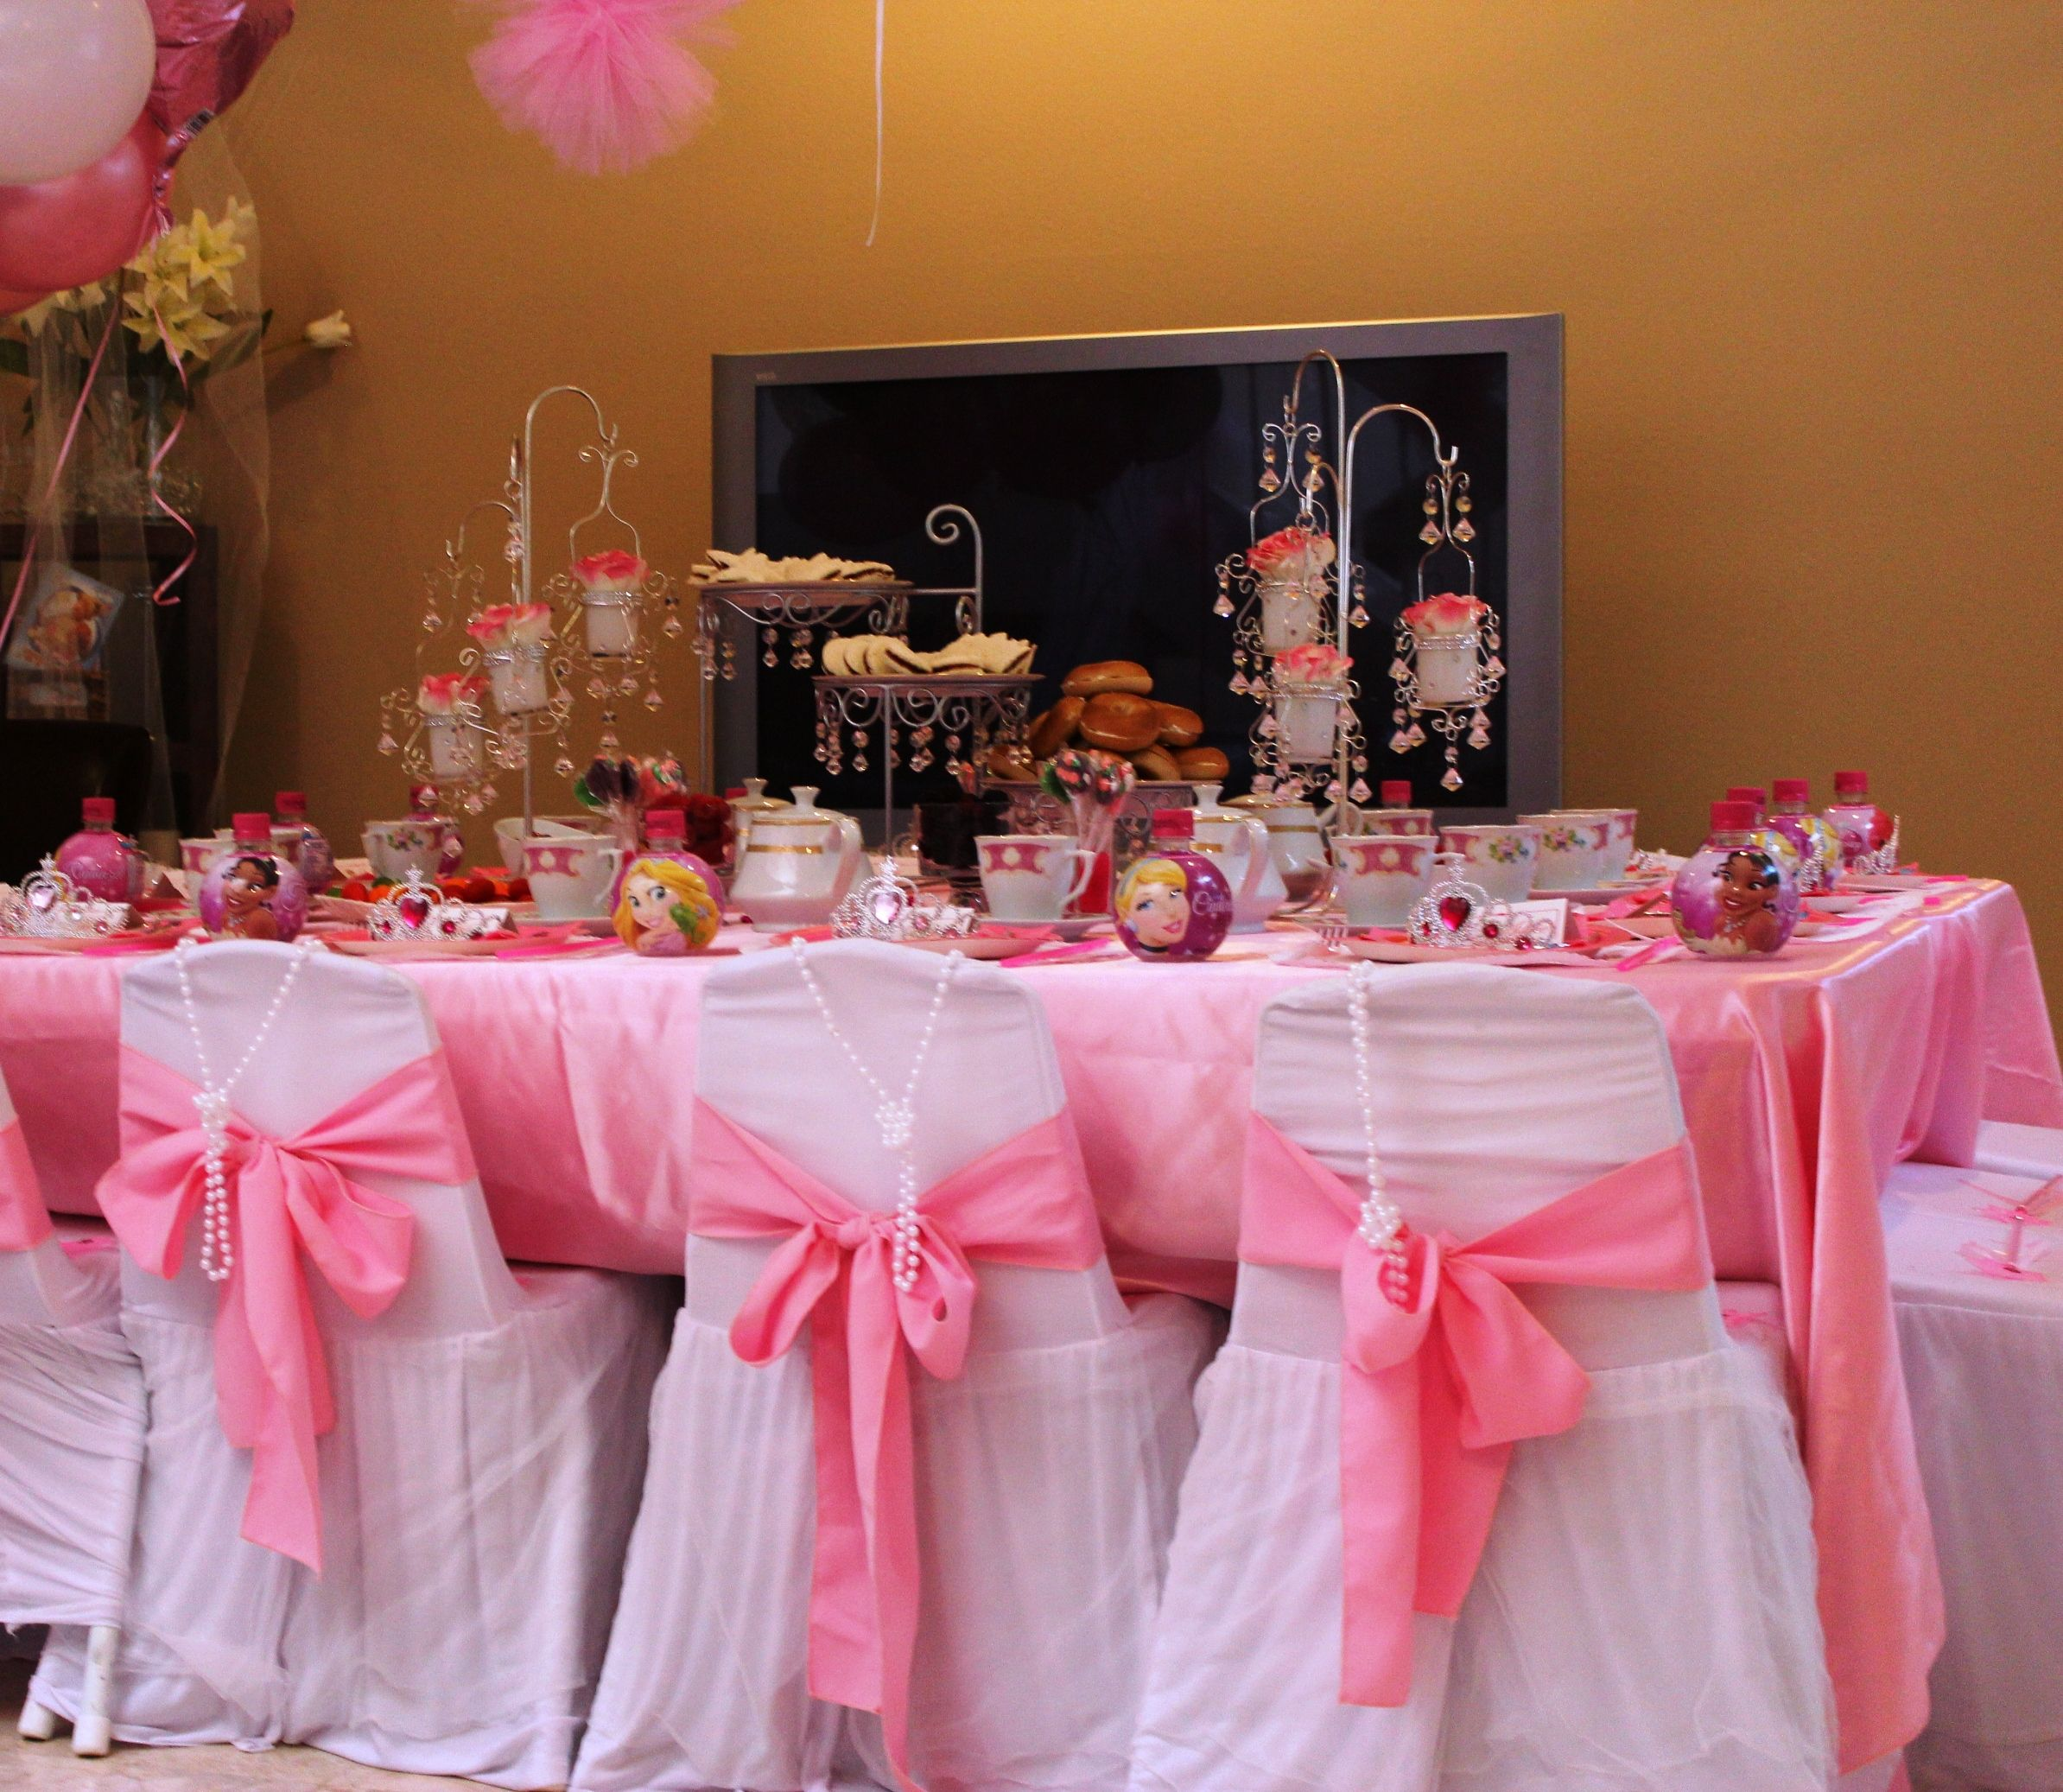 Birthday table decorations for girls - Princess Tea Party Ideas Kid Sized Tables And Chairs With Princess Style Chair Covers